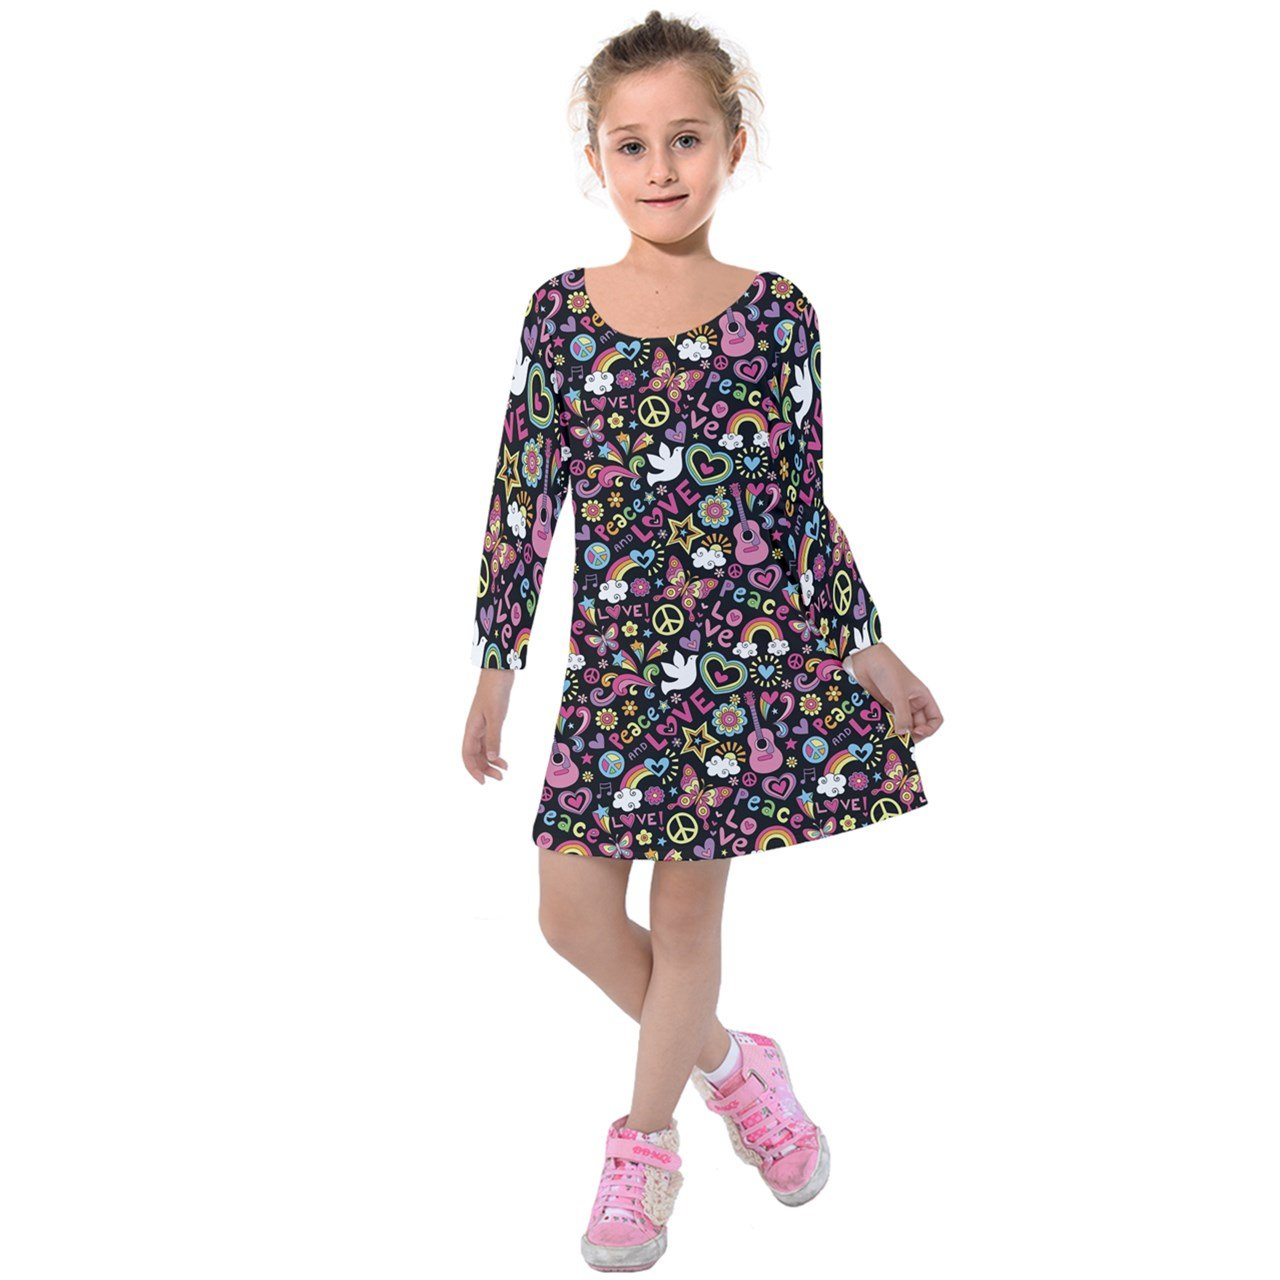 PattyCandy Girls Love & Music Groovy Doodle Kids Long Sleeve Velvet Dress - 8